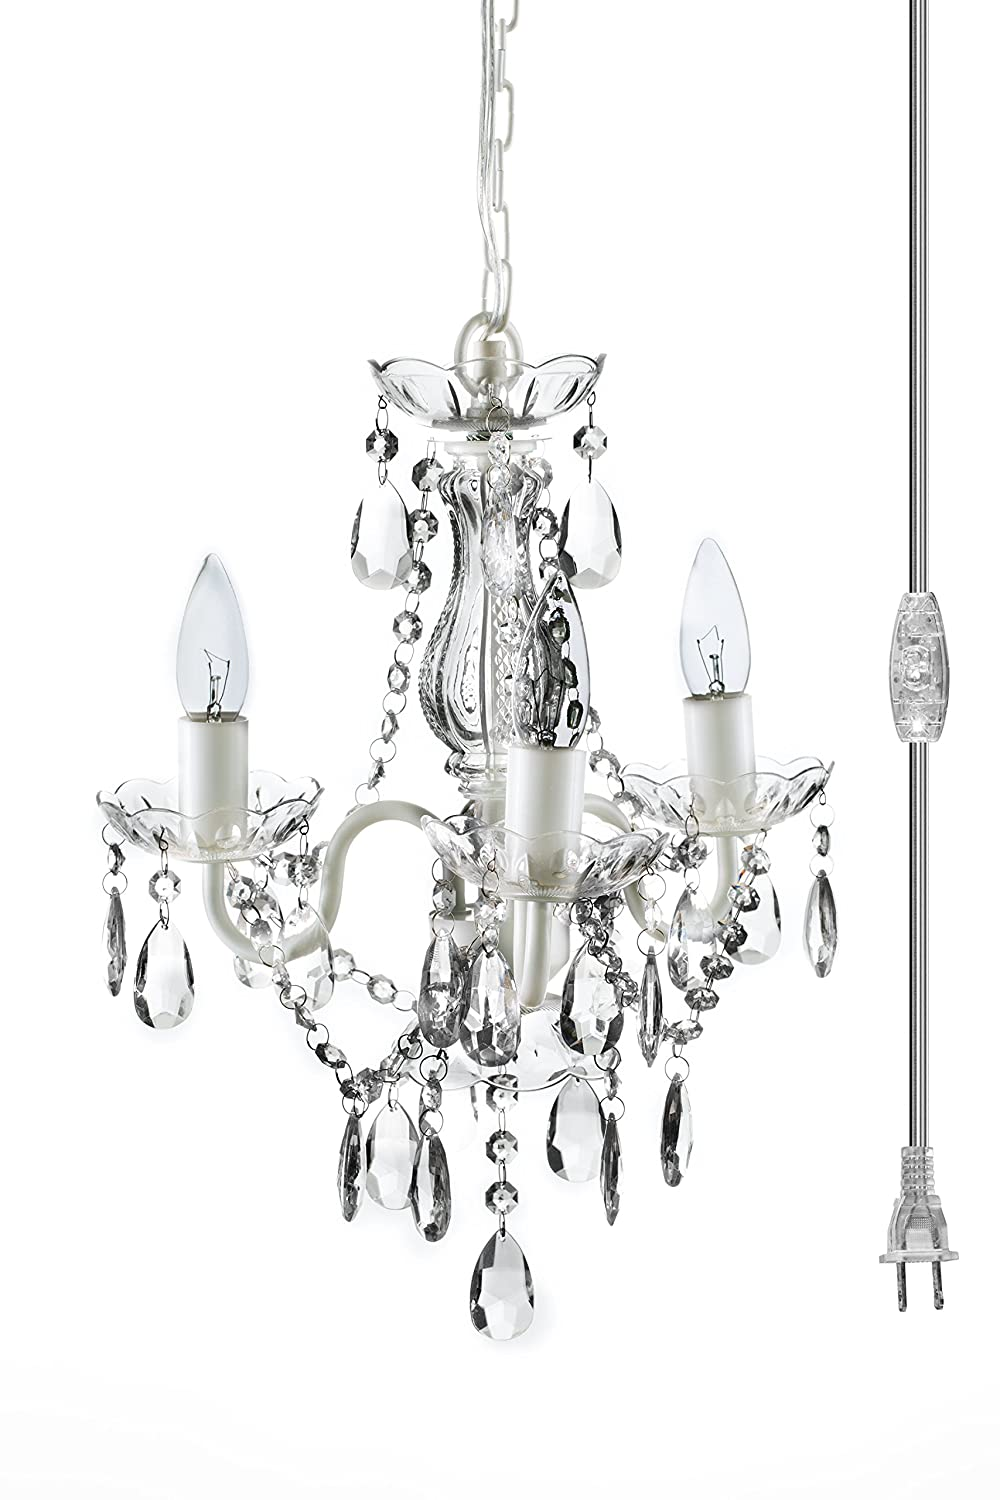 The original gypsy color 3 light mini plug in crystal chandelier for the original gypsy color 3 light mini plug in crystal chandelier for h17 w12 white metal frame with clear acrylic crystals amazon arubaitofo Image collections